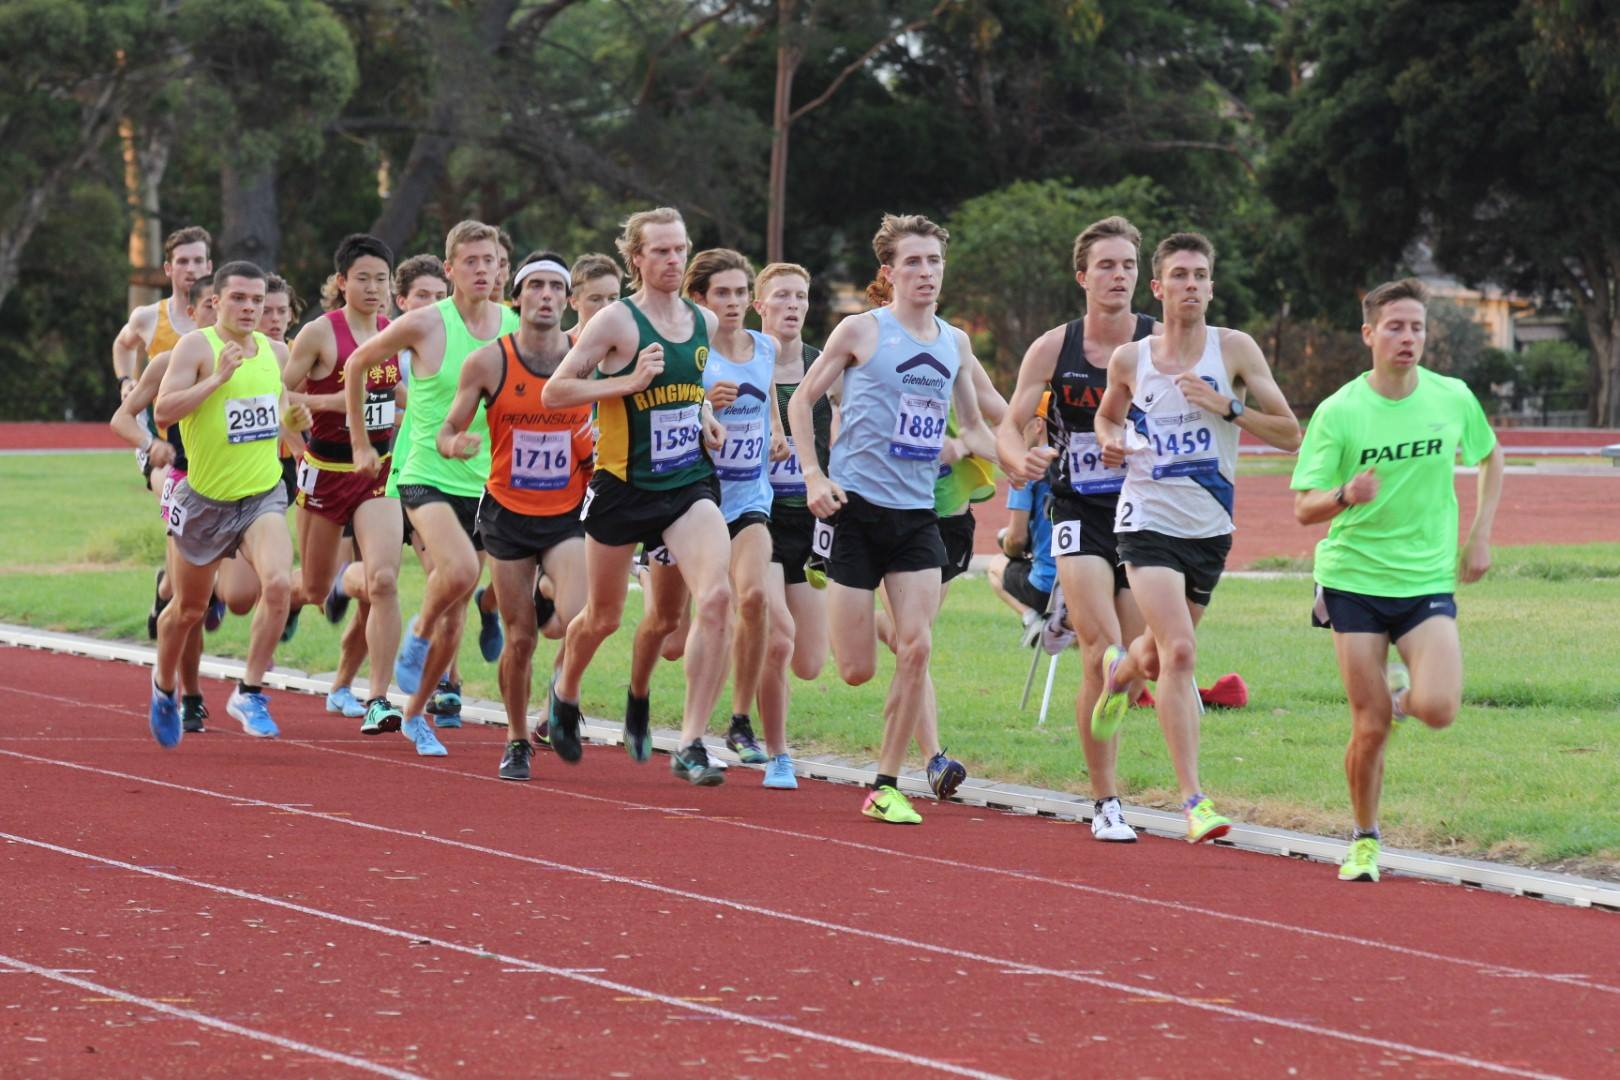 A large pack of runners bunched together on an athletics track.